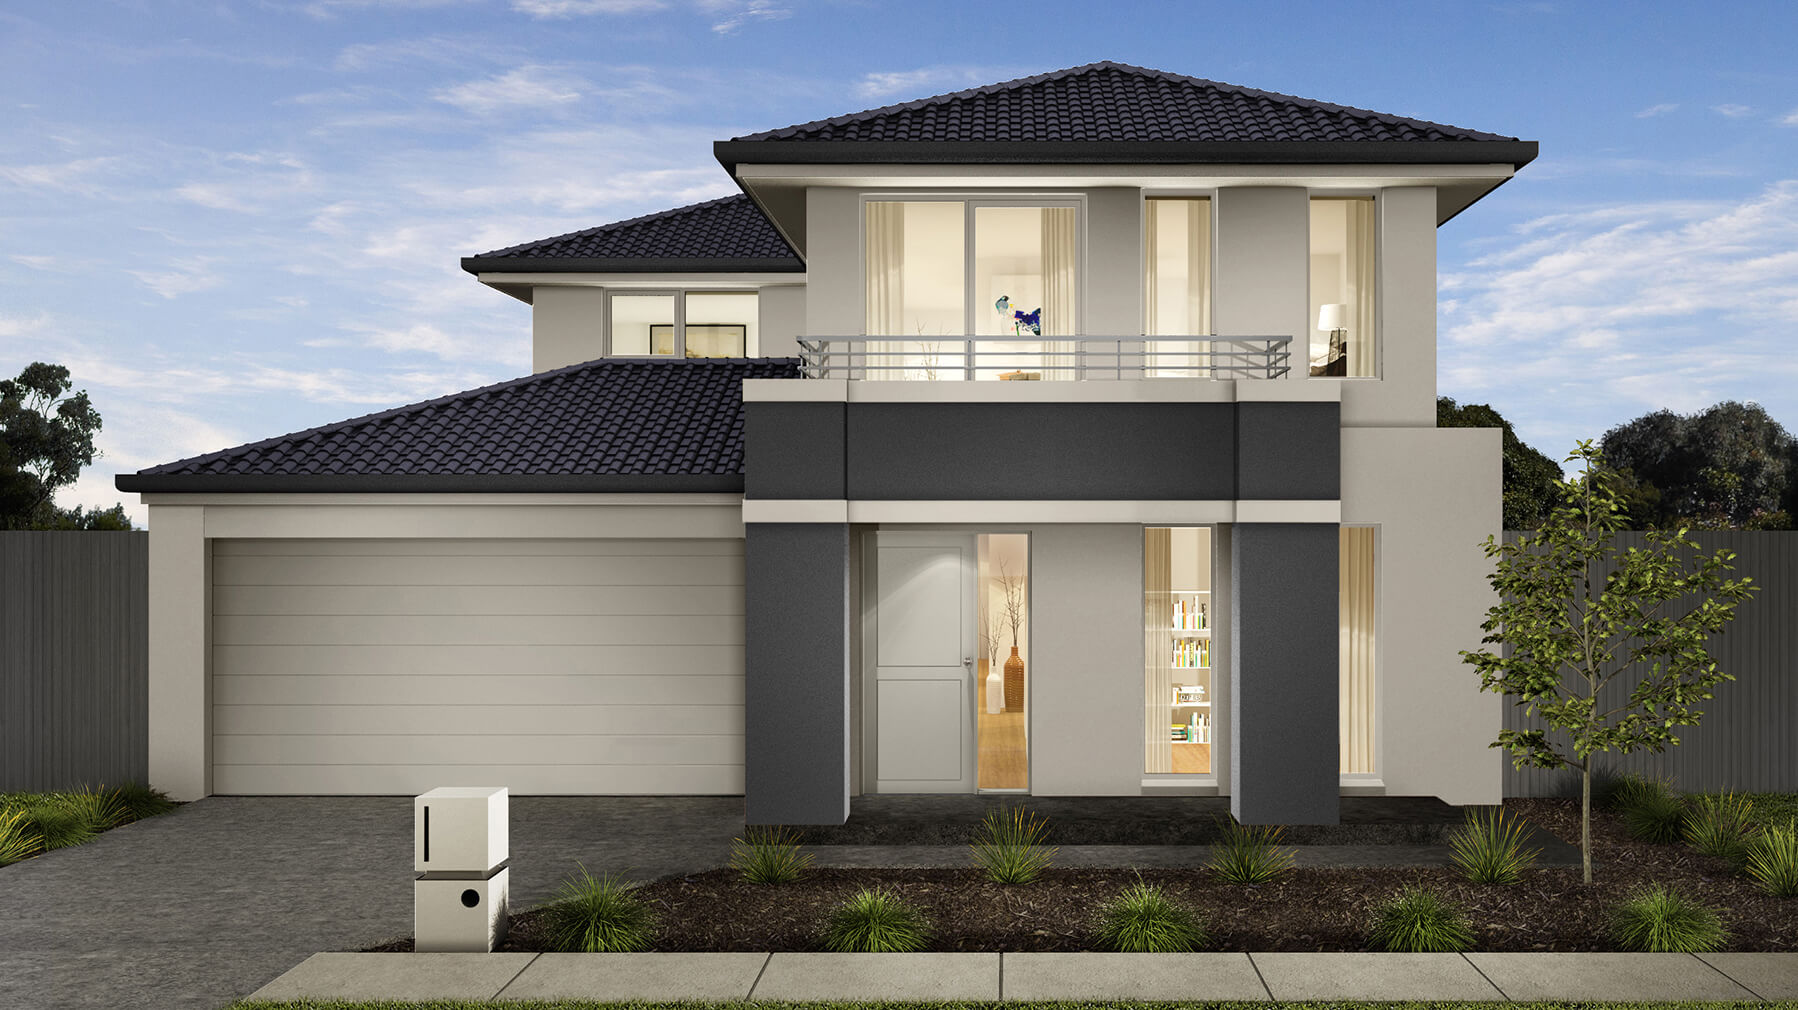 EASYLIVING SANDRIDGE 14 (HEBEL) Exterior Image 2